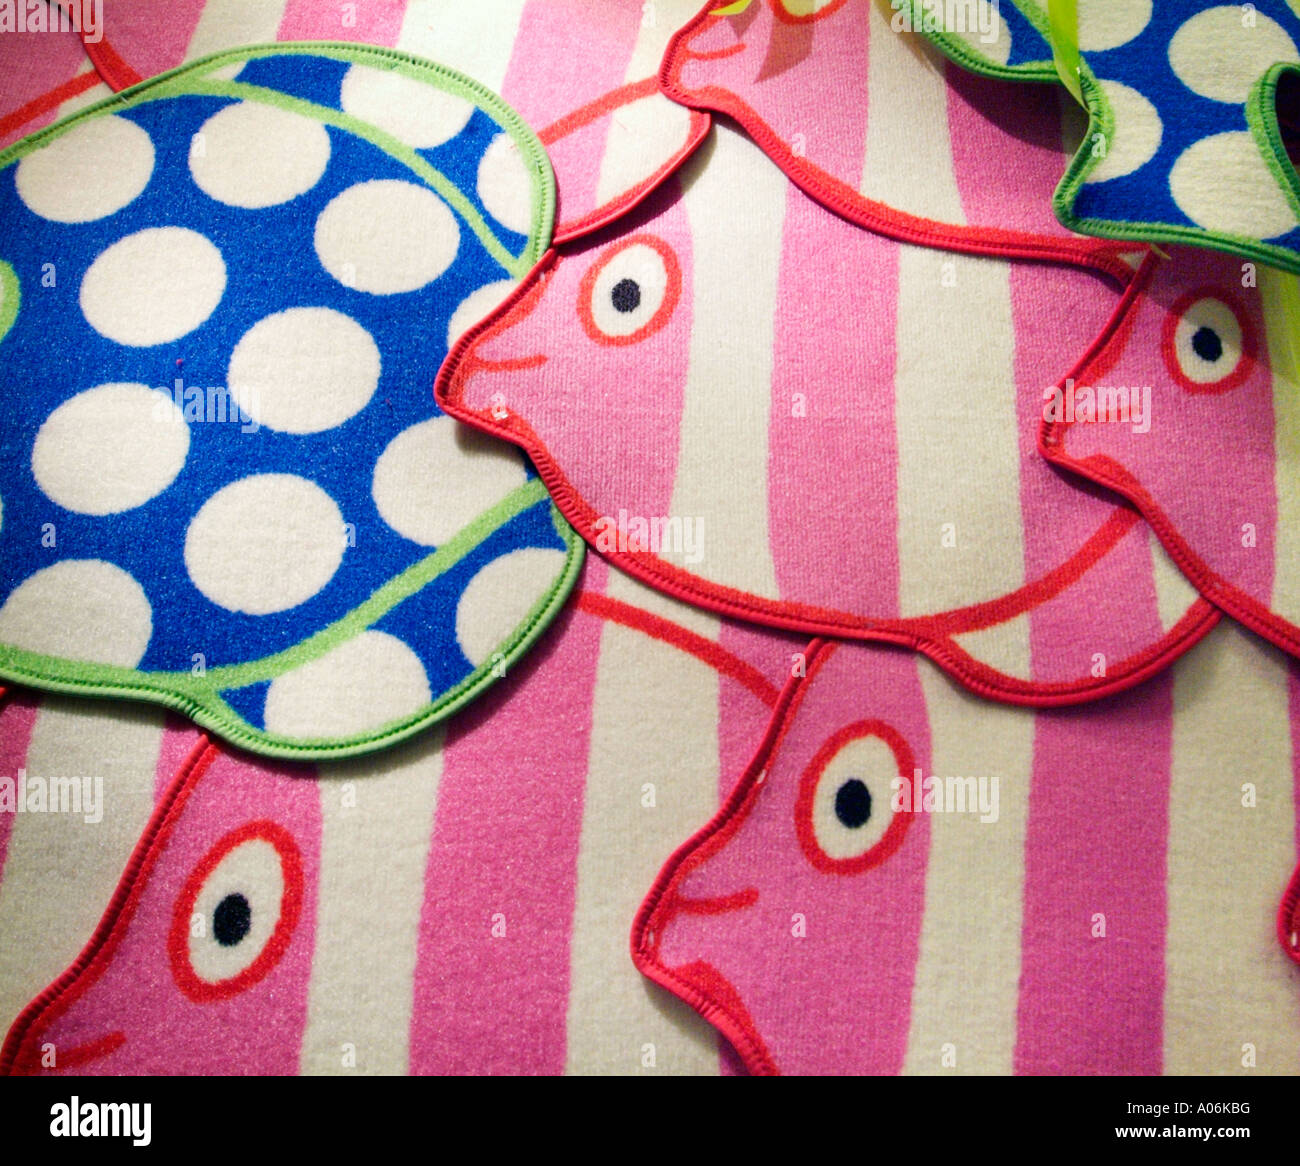 Bath Bathroom Rug Fish Style Round Eye Mouth Red Blue Pink Texture Pile  Modern Carpet Fabric